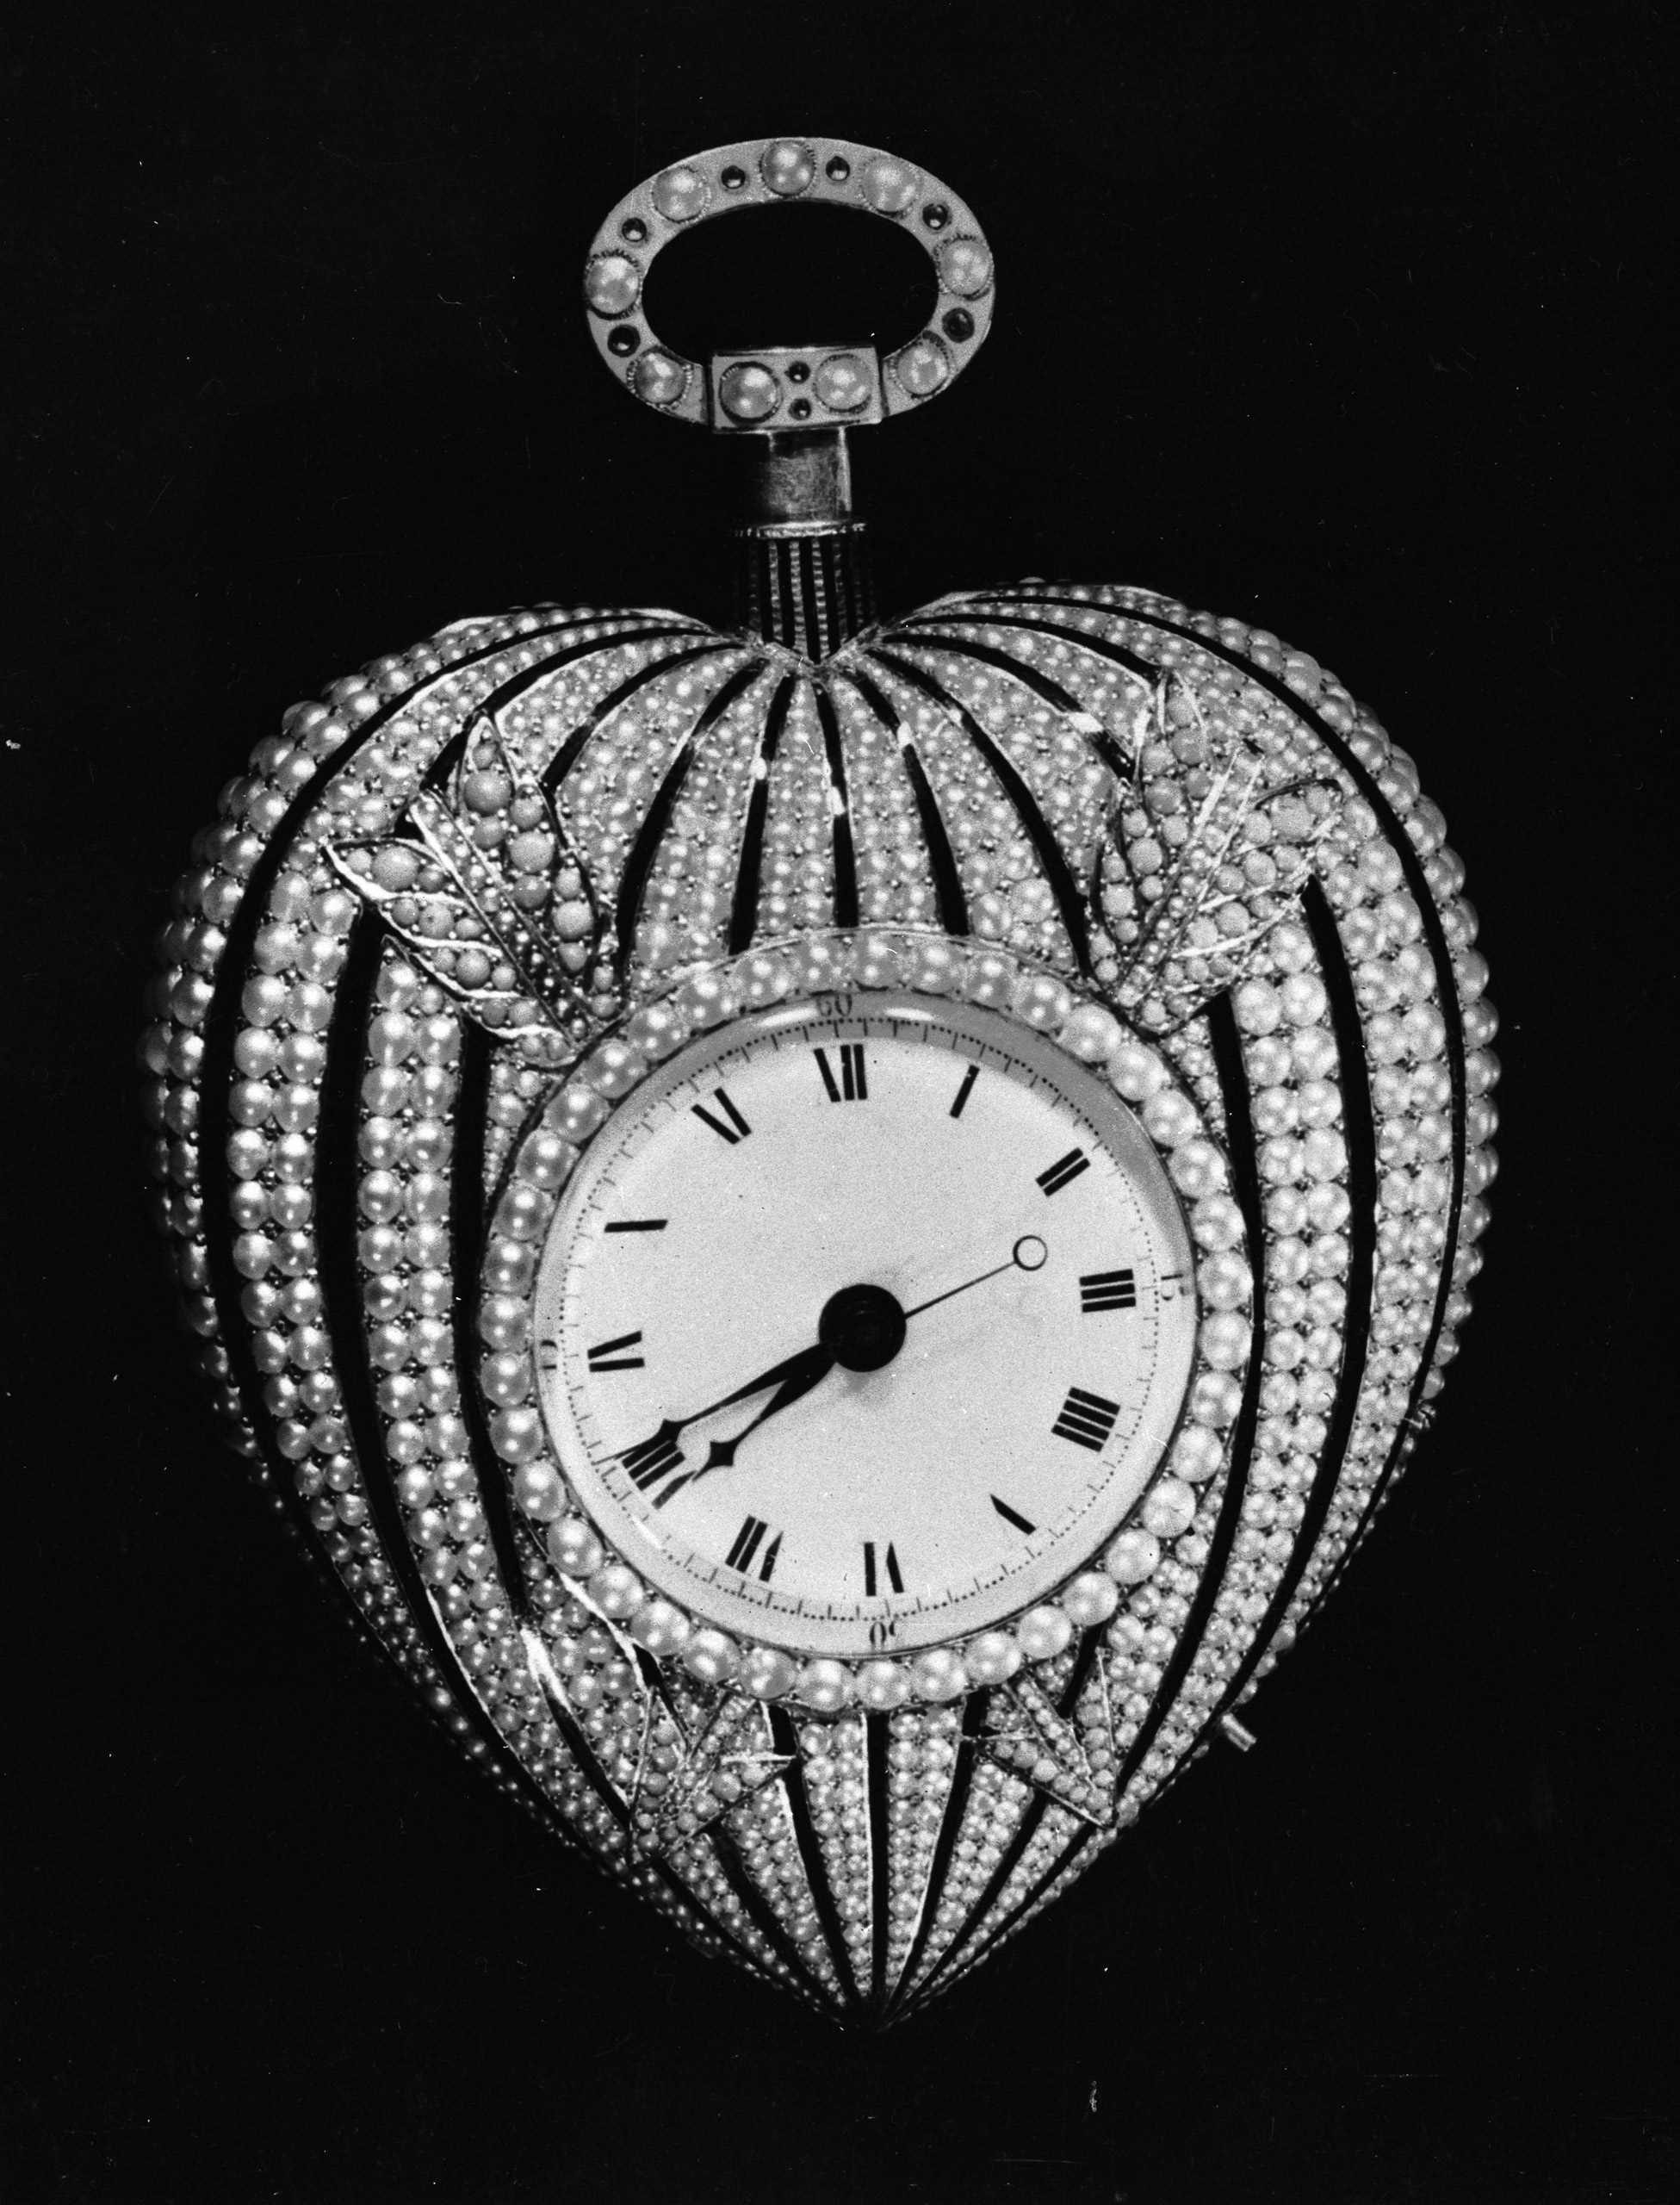 The heart-shaped watch given to Josephine by Napoleon Bonaparte.